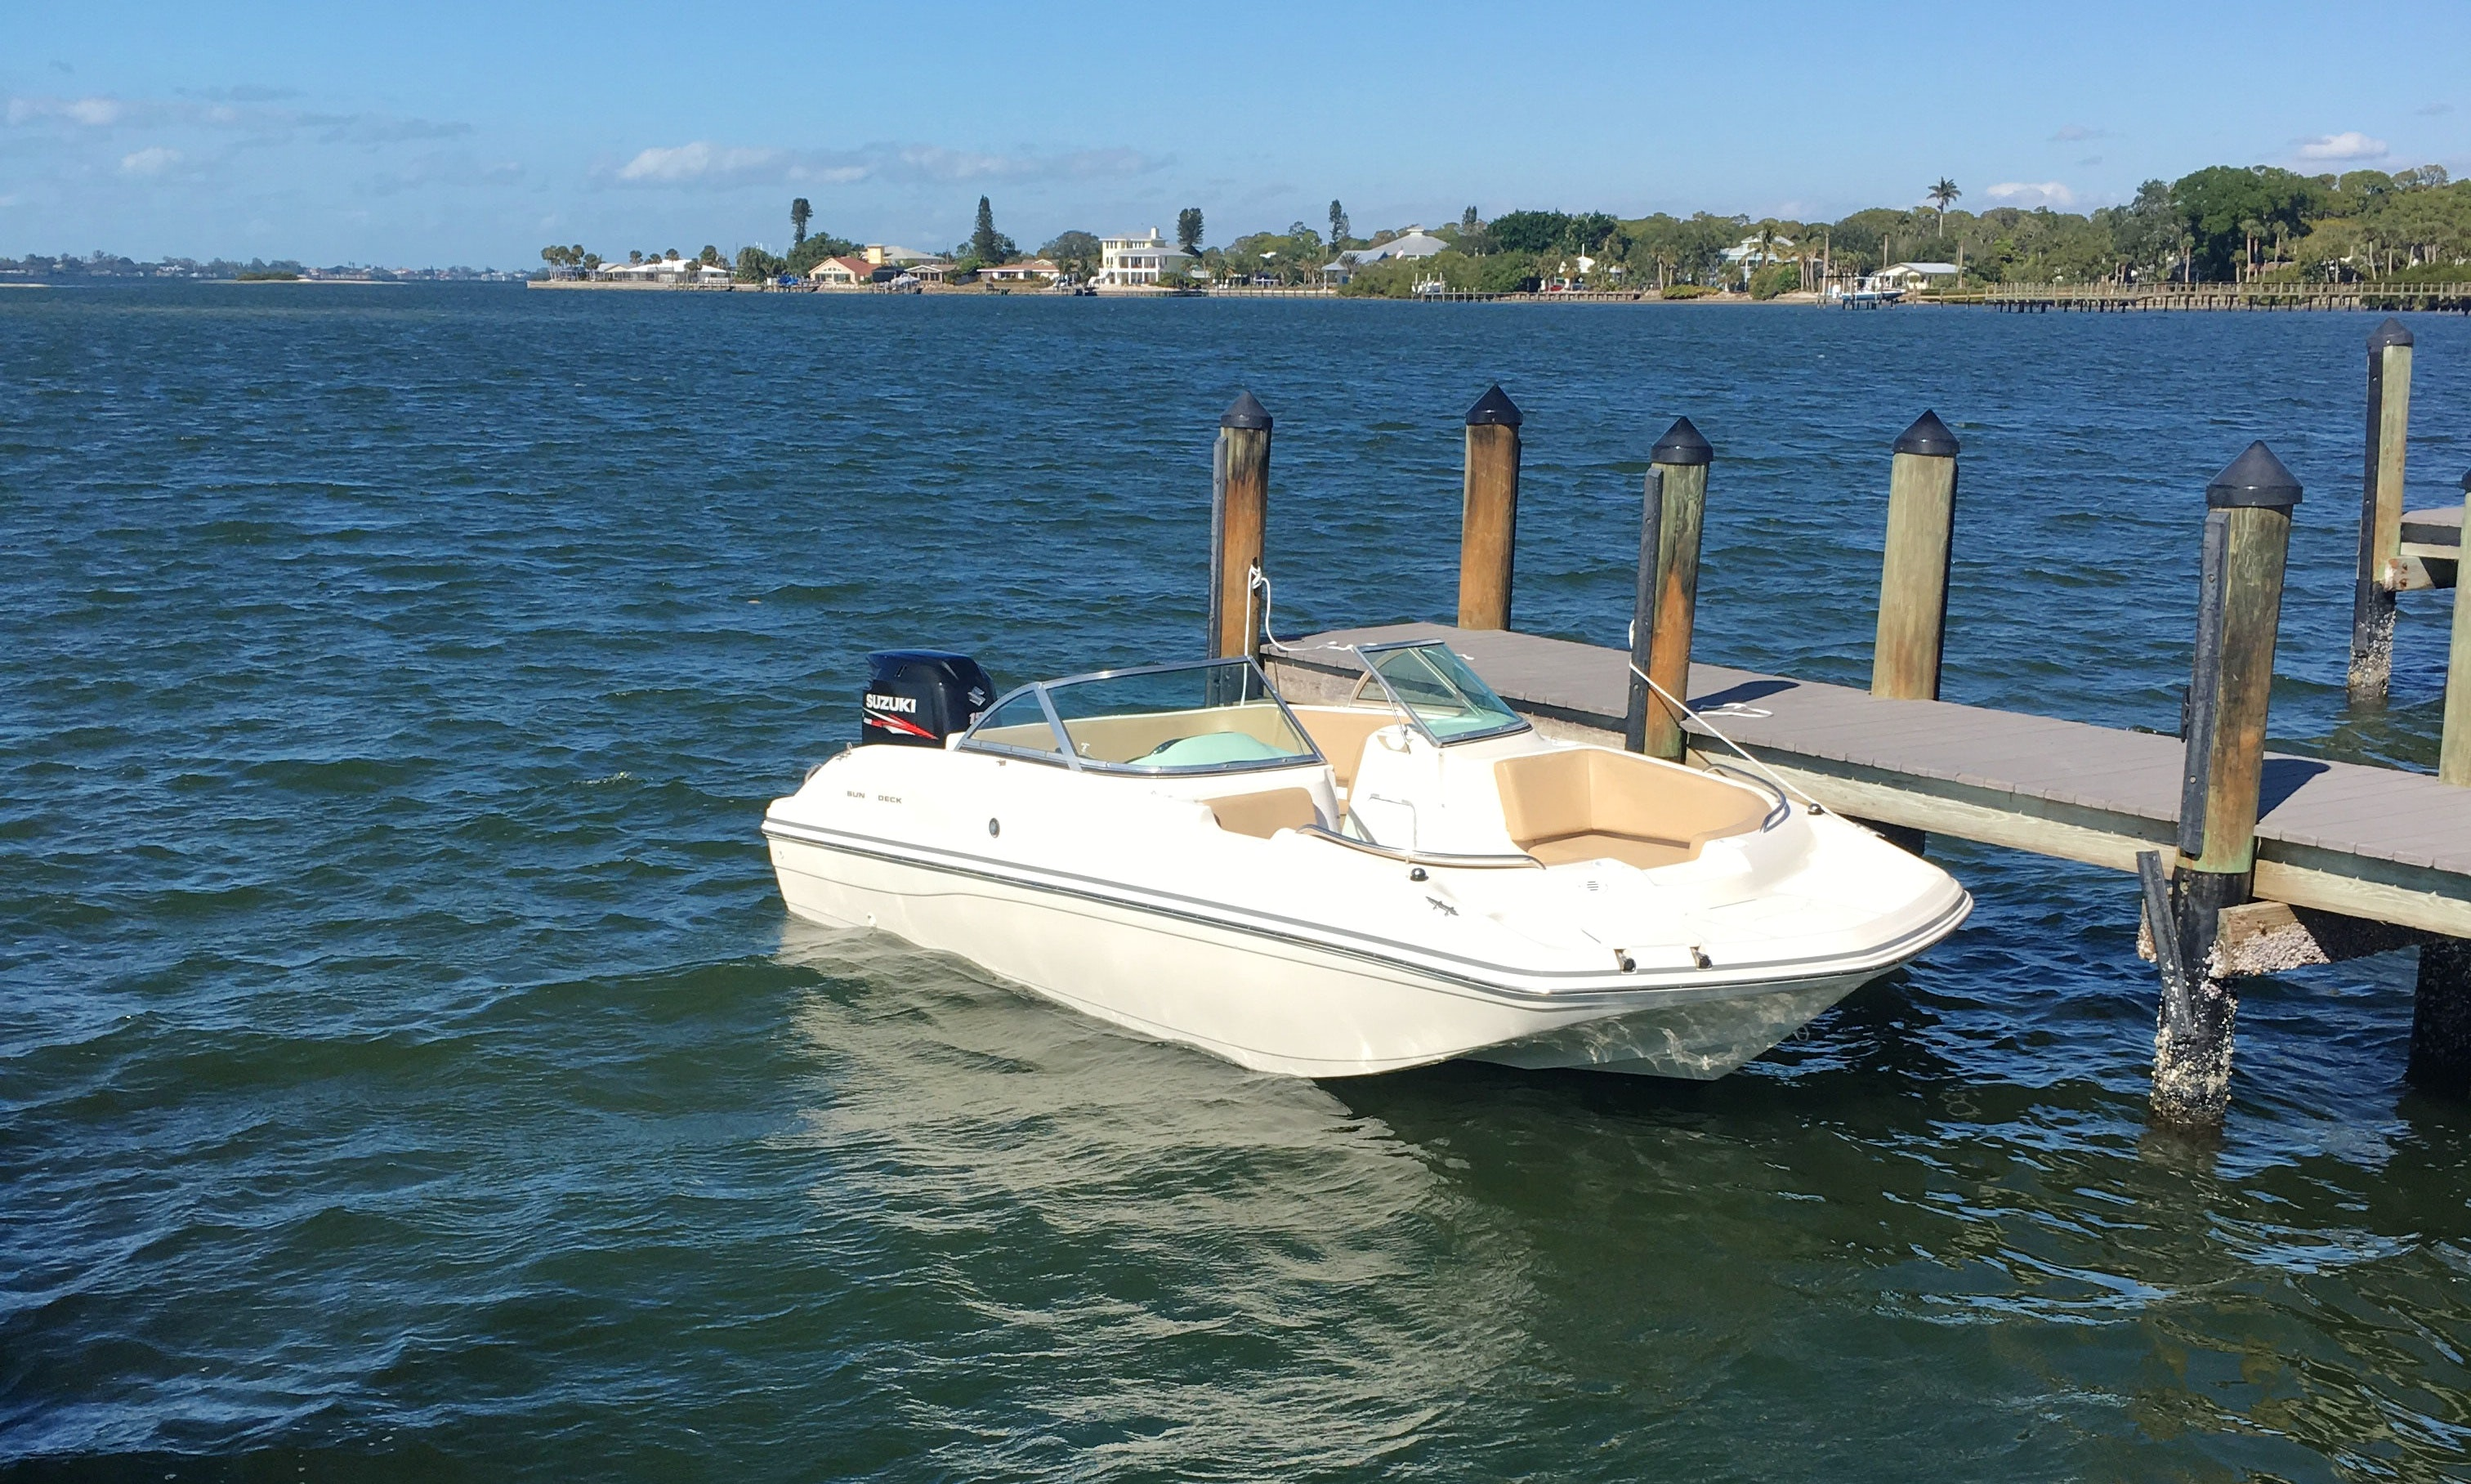 hot sale online c48a1 6a13c Deck Boat Rental in Sarasota, Florida